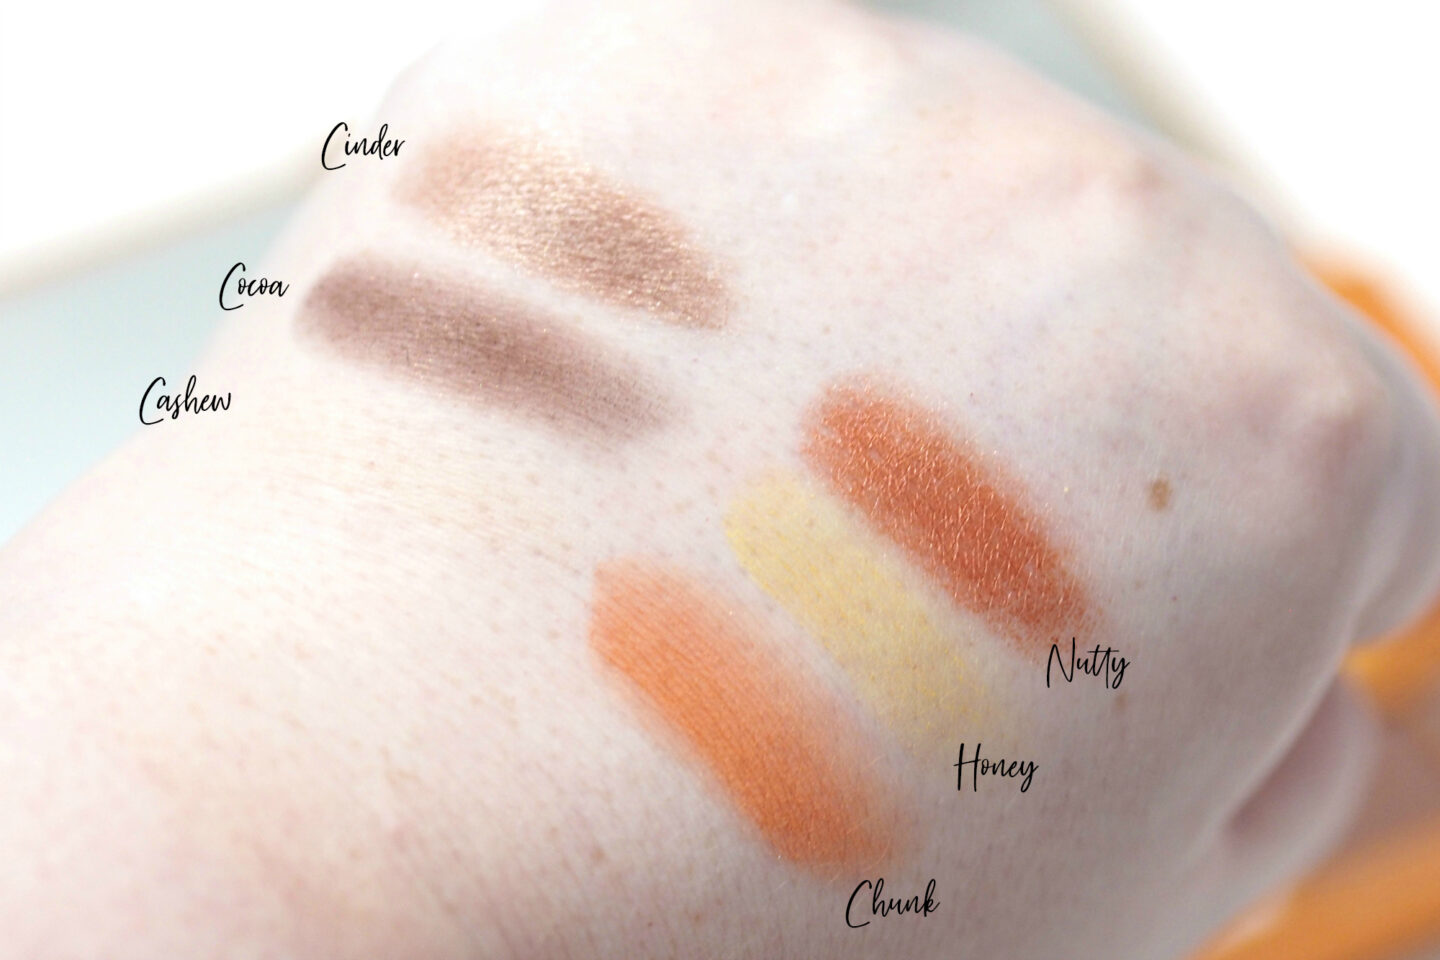 I Heart Revolution Peanut Butter Cup Chocolate Eyeshadow Palette Review and Swatches